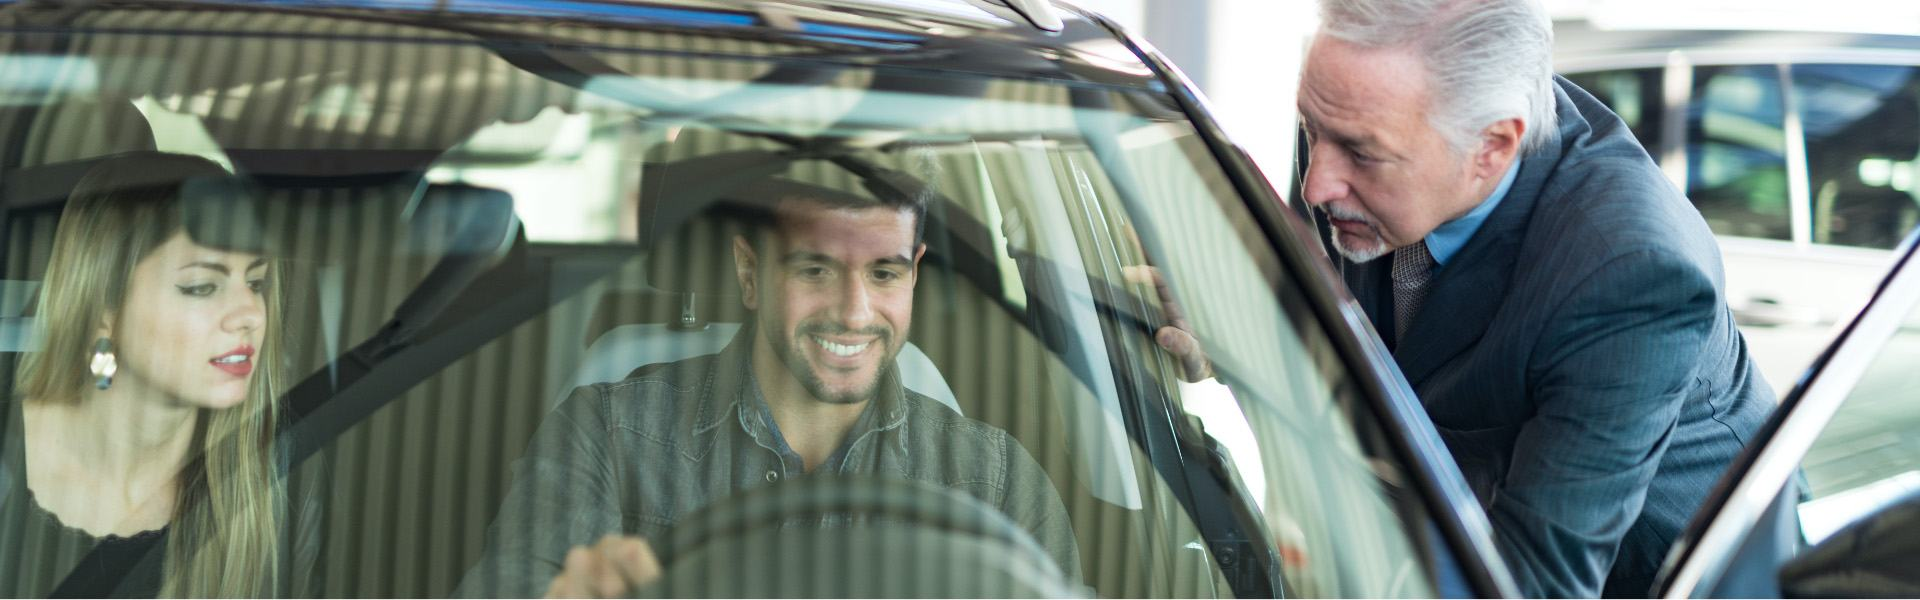 Smiling couple in a car with a salesperson outside